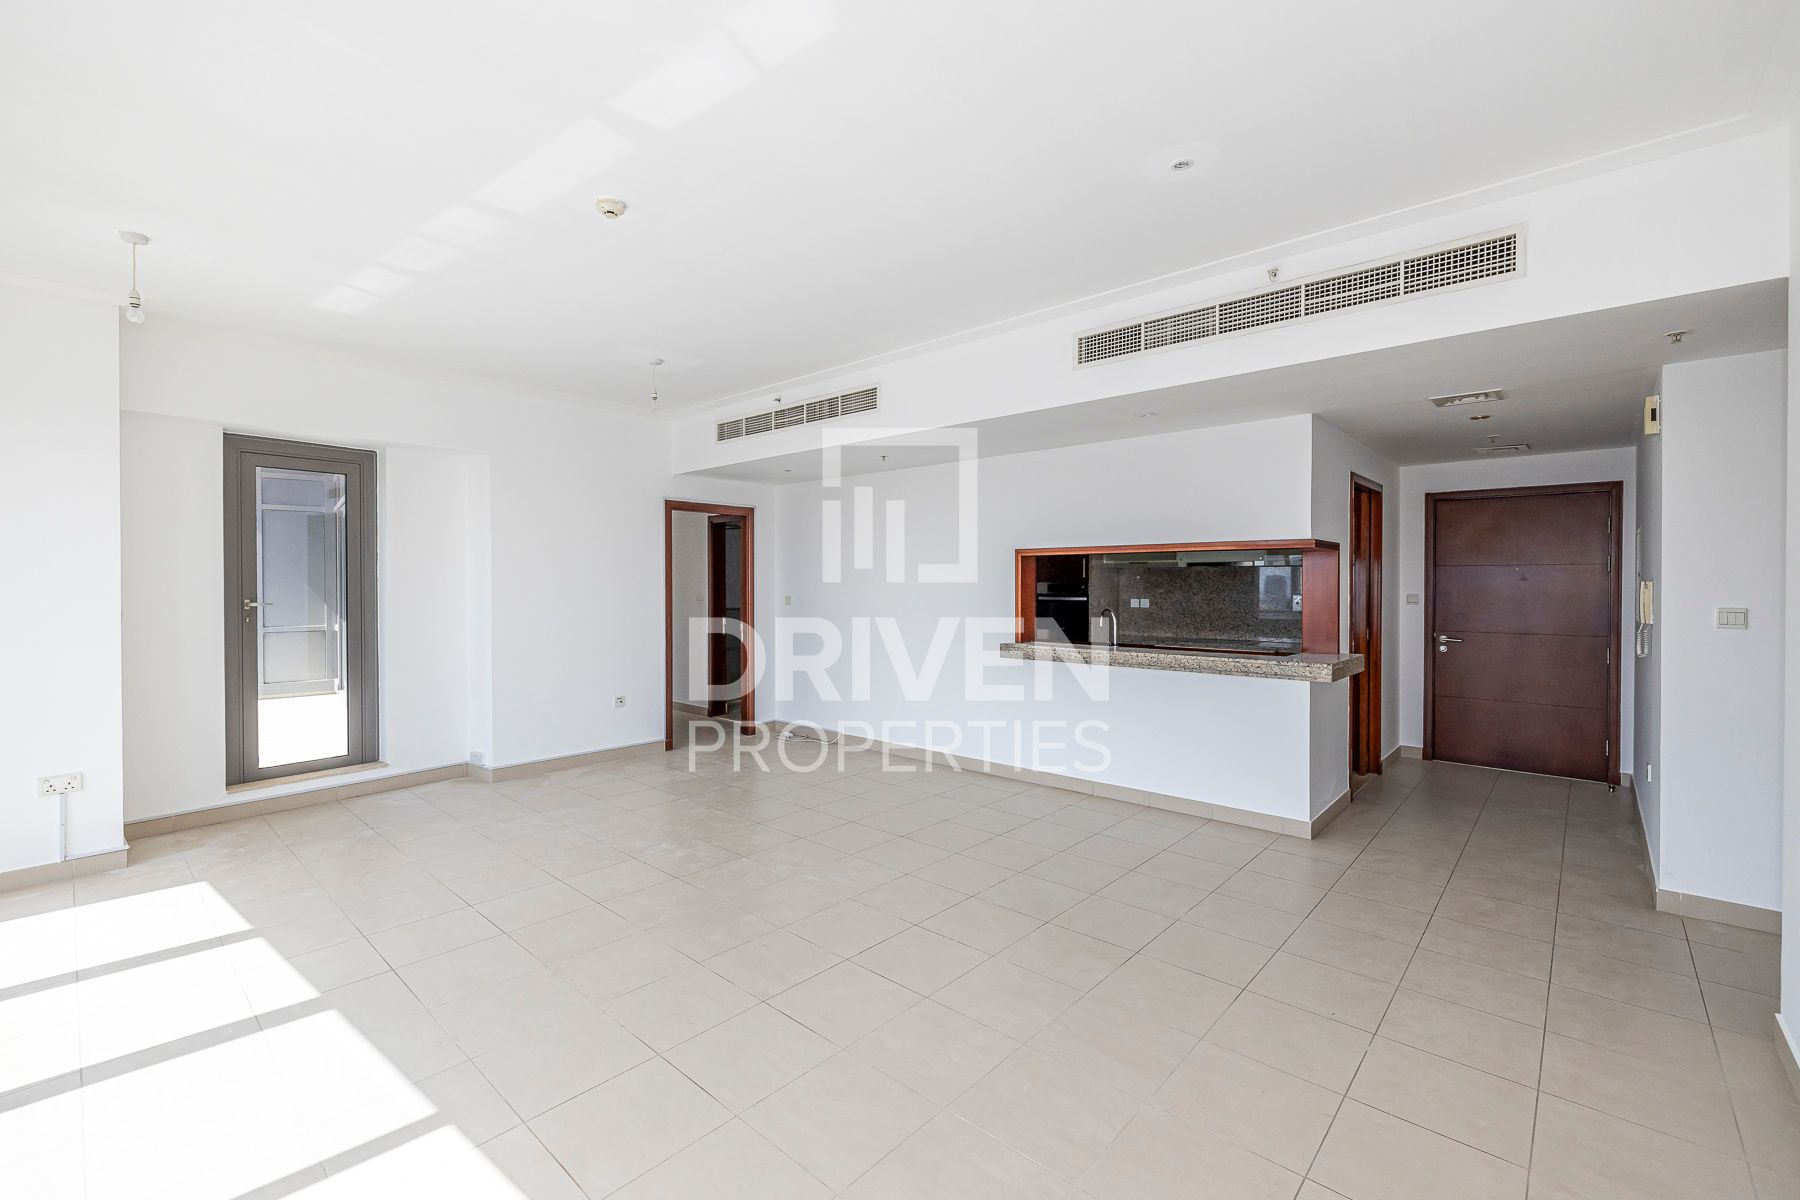 Prime Location | Well-priced and Stunning